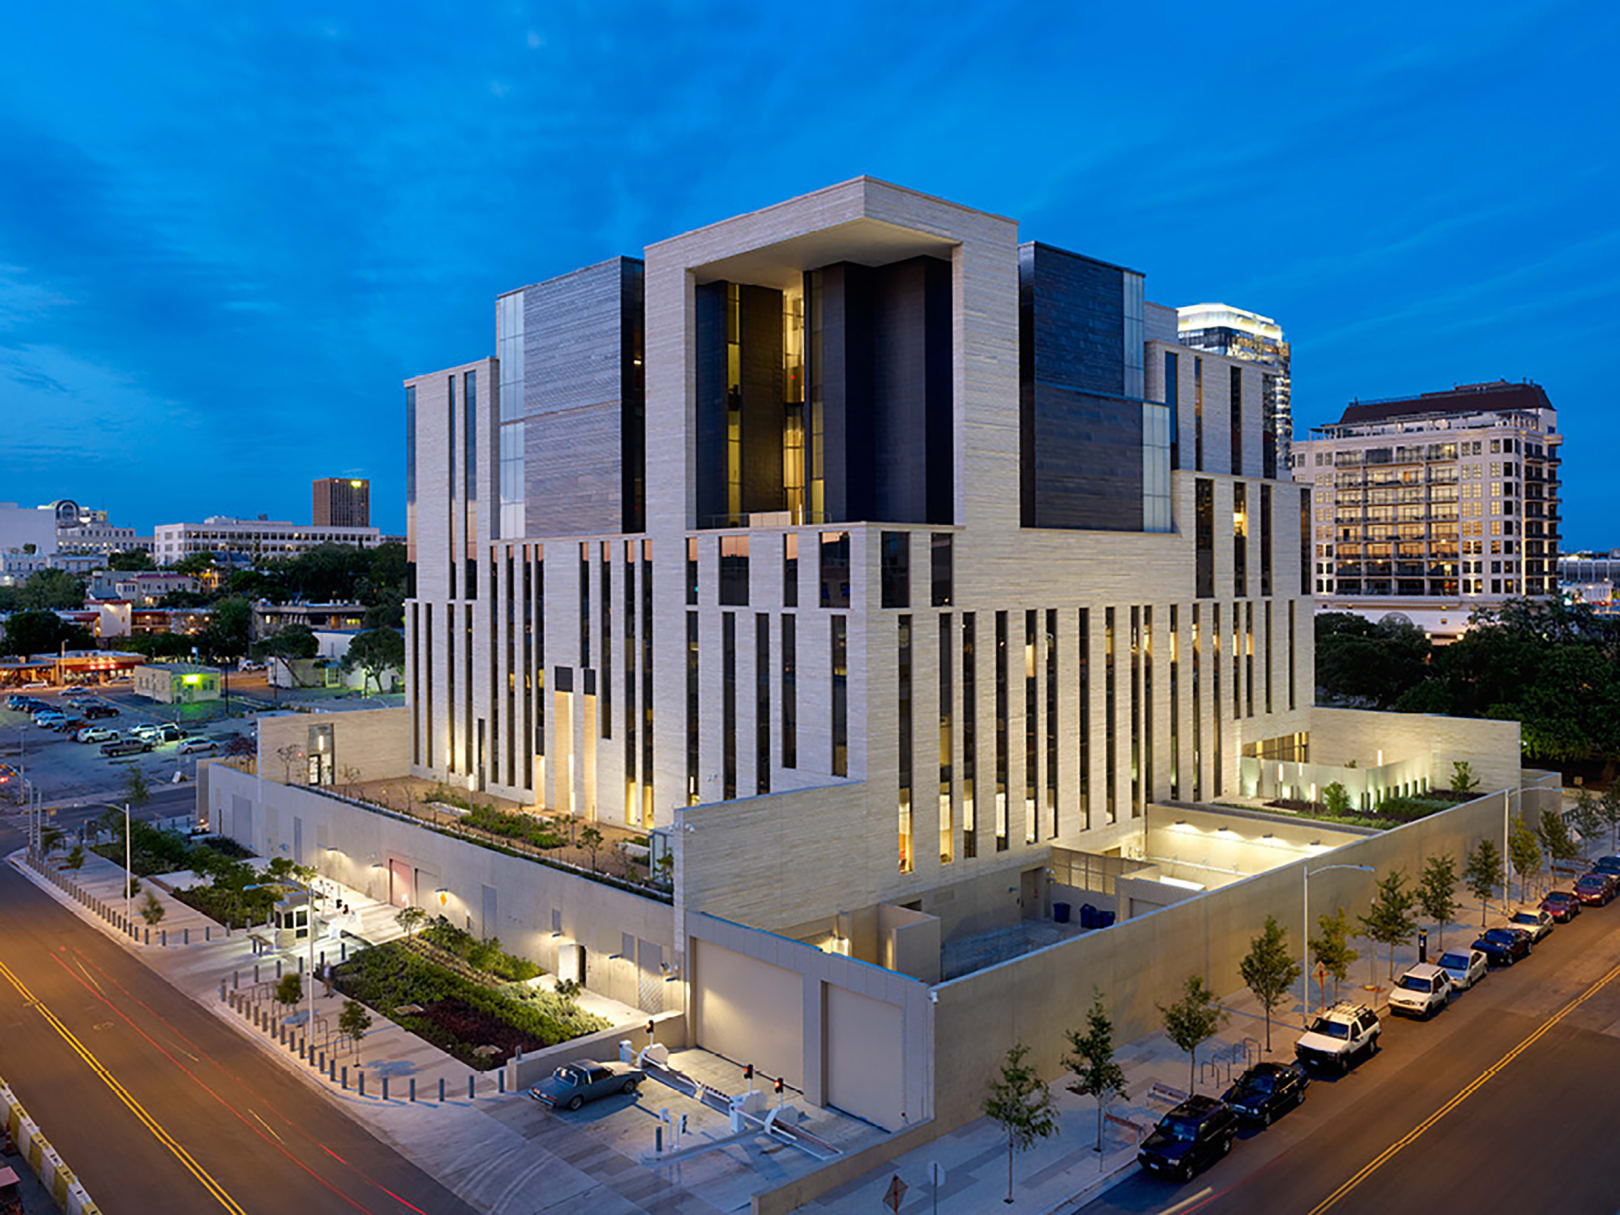 United States Courthouse, Austin, Texas